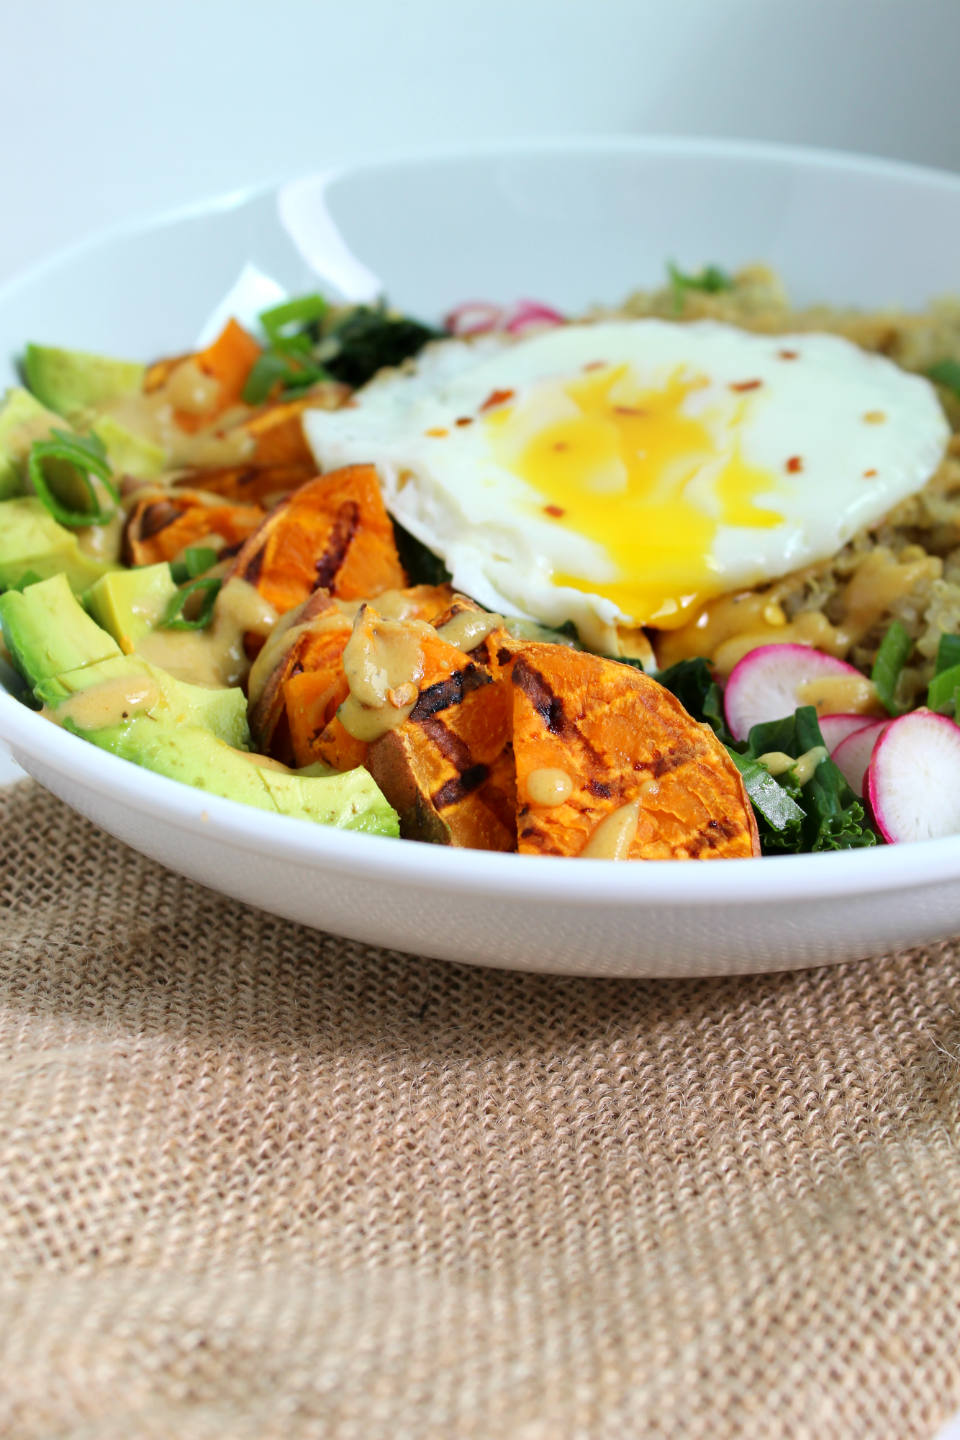 Vegetarian Breakfast Power Bowl with Maple Dijon Dressing -- A veggie-filled recipe with quinoa, sweet potato, avocado, eggs, and creamy dressing. | @sinfulnutrition www.sinfulnutrition.com #thereciperedux